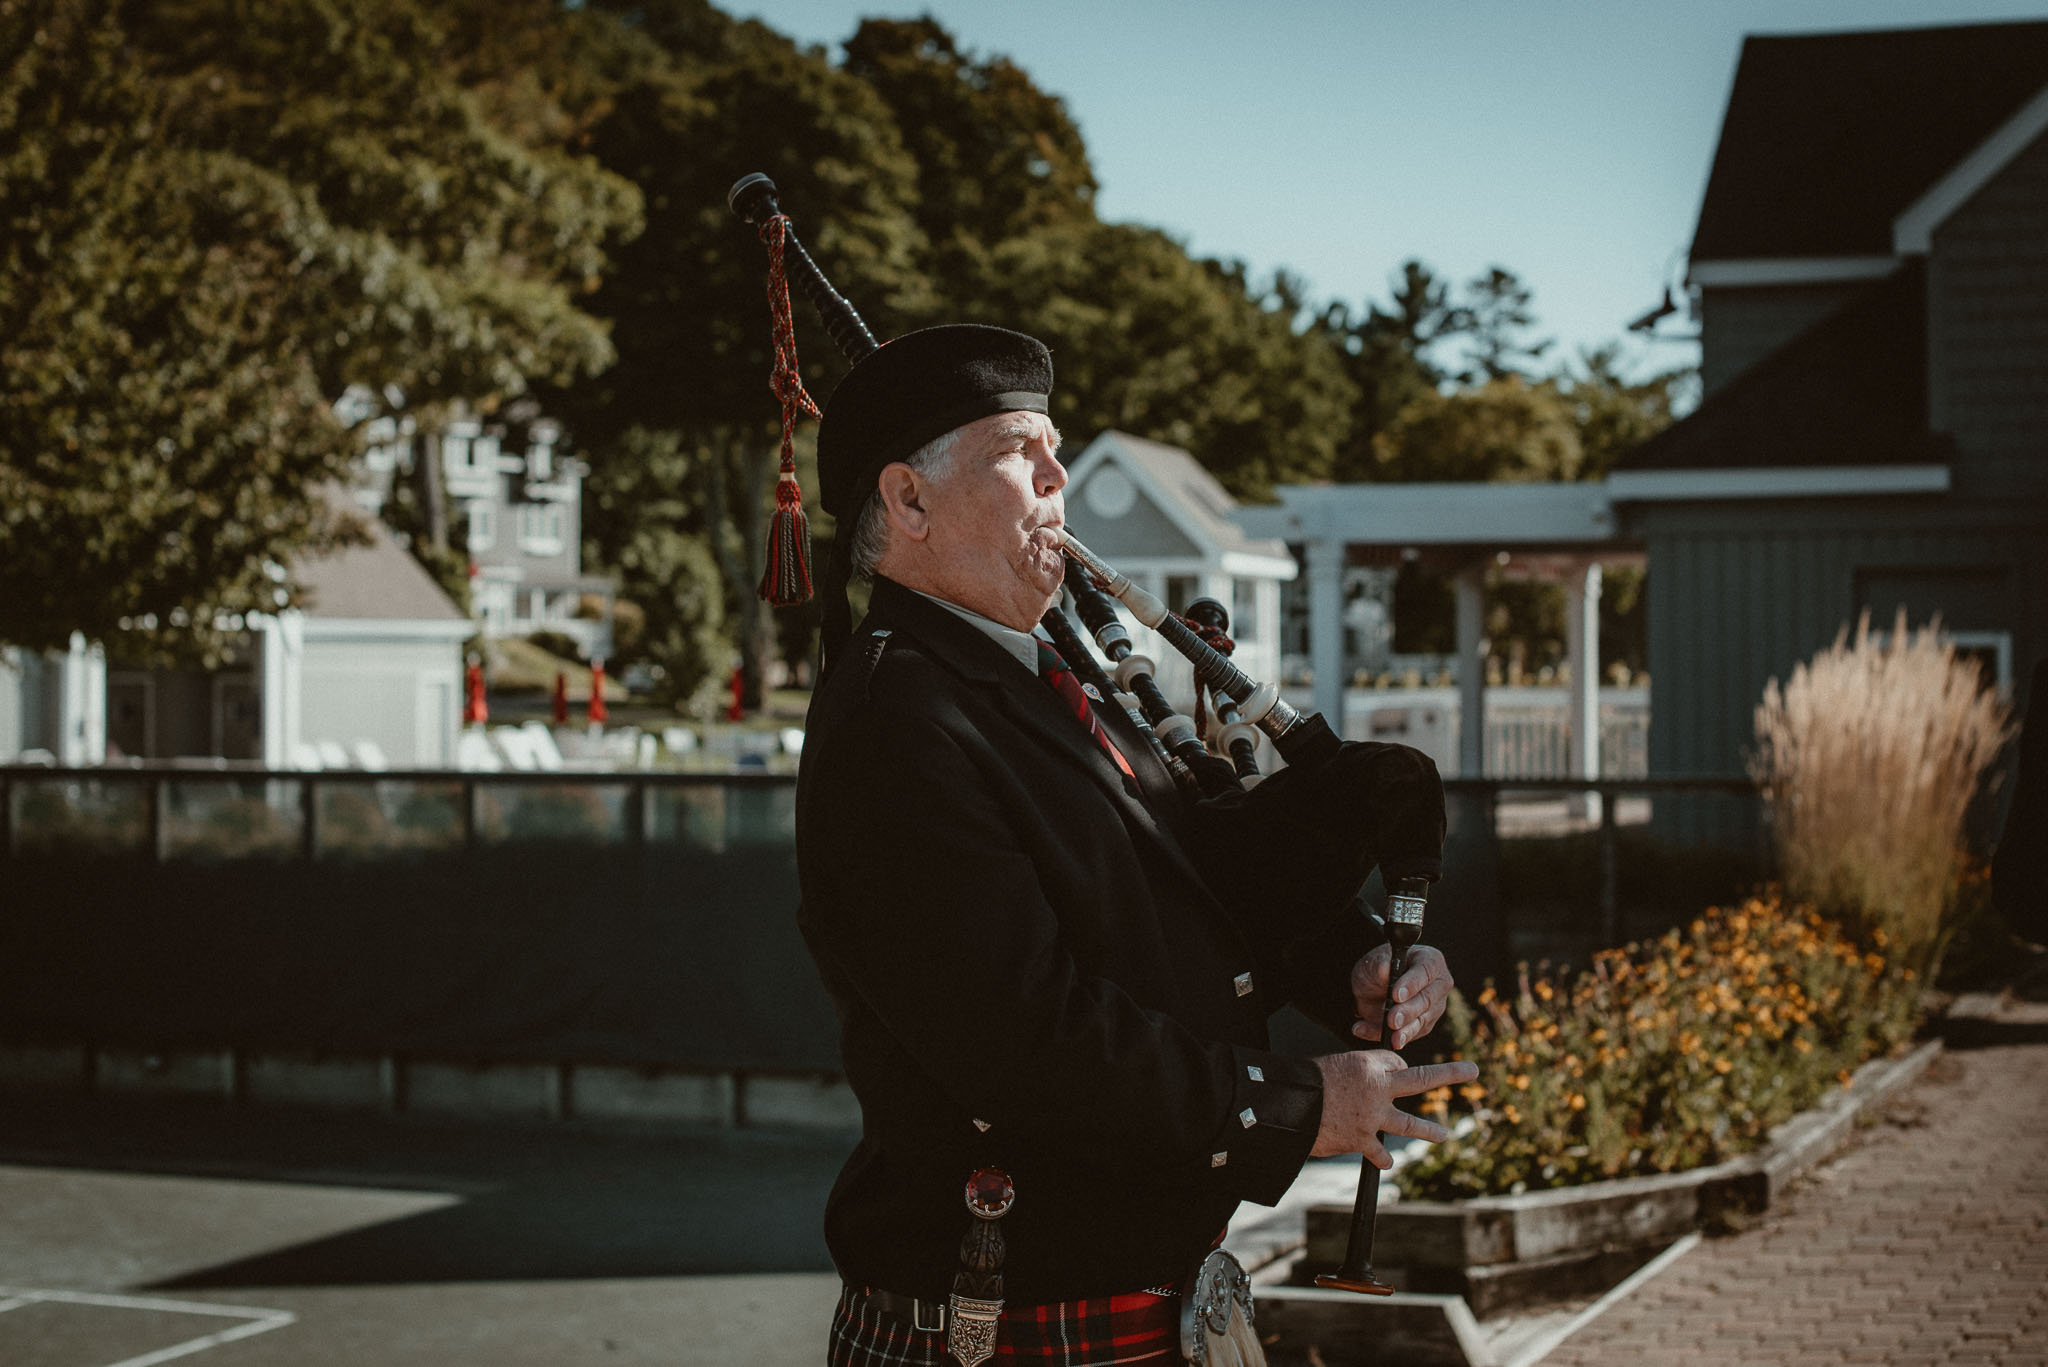 Bagpiper performing during the ceremony exit.